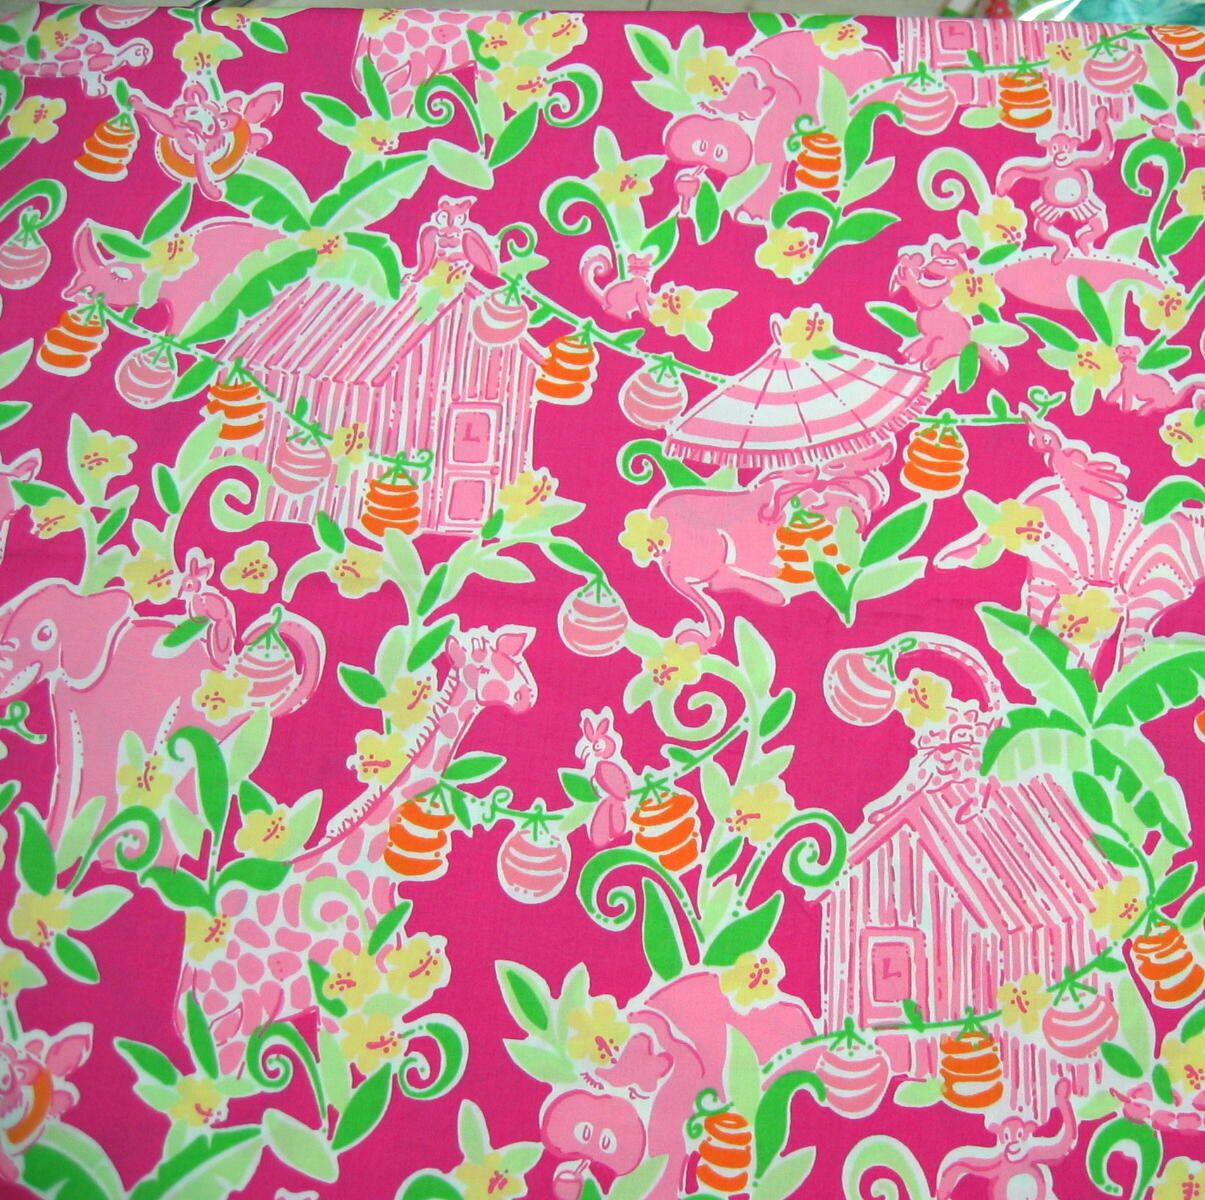 Lilly Pulitzer Fabric Authentic New Lilly Pulitzer Fabric Slaterock House 1 Yard X 57